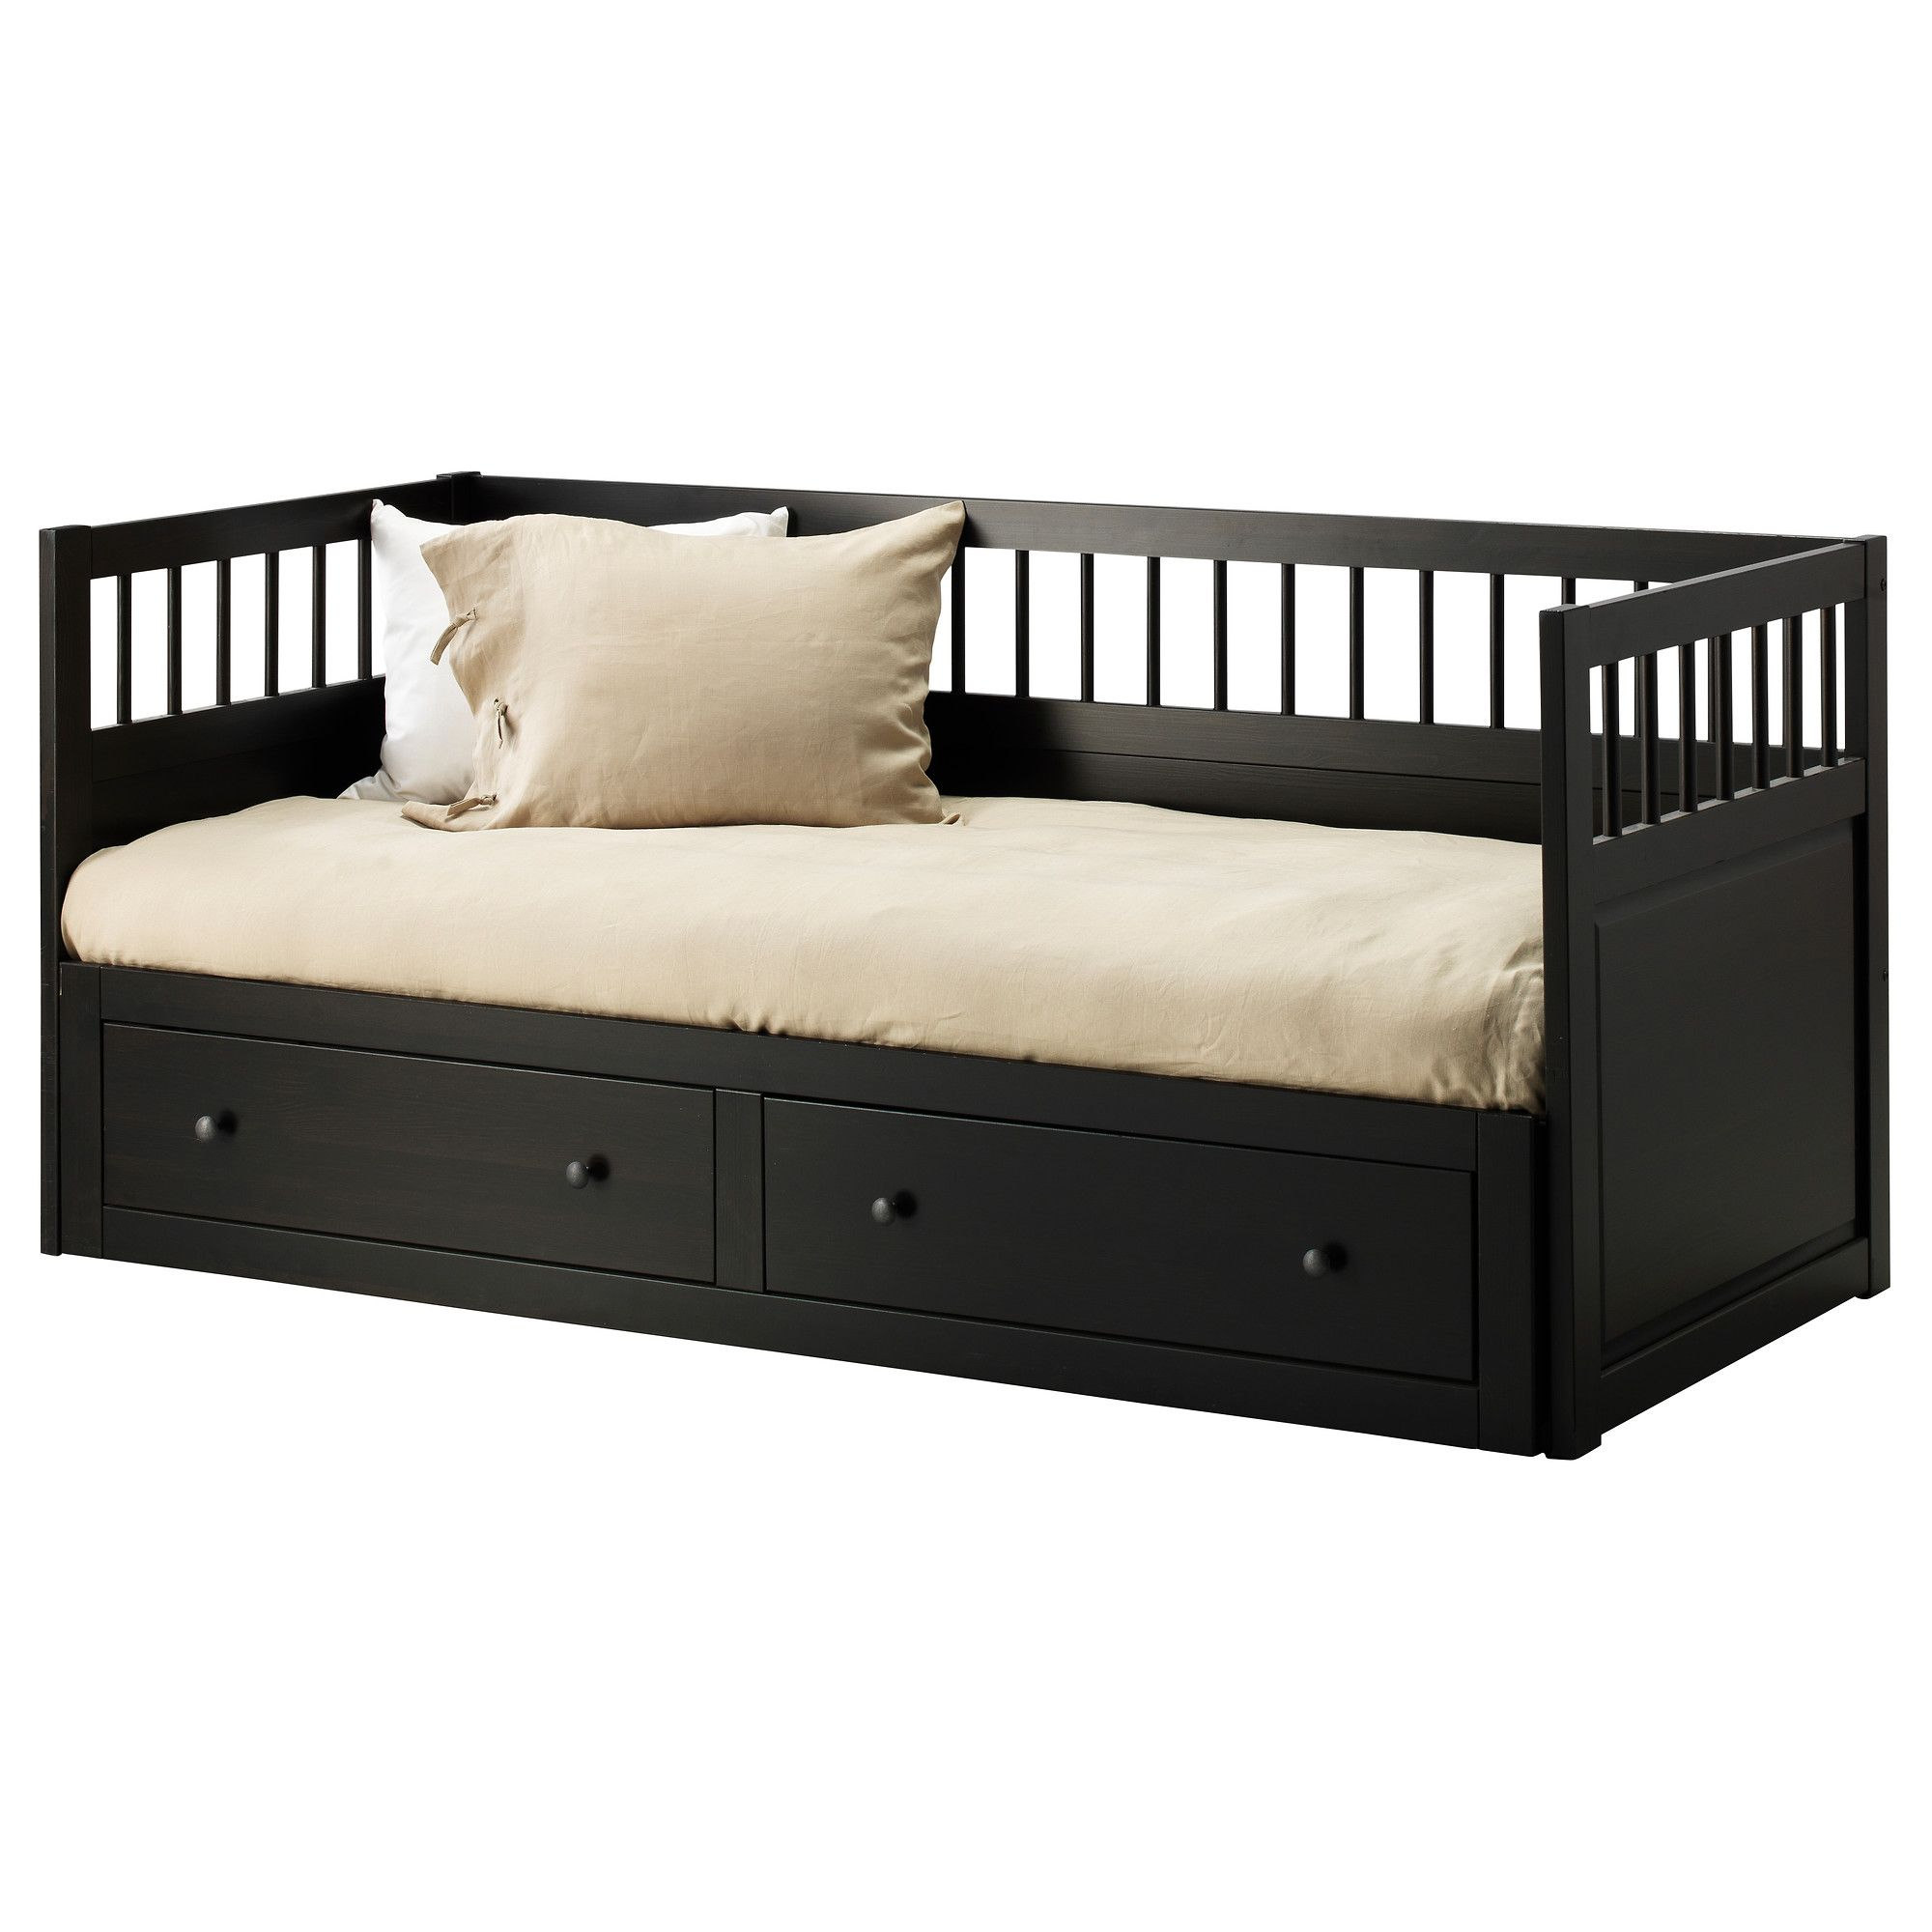 Ikea Us Furniture And Home Furnishings Ikea Daybed Daybed